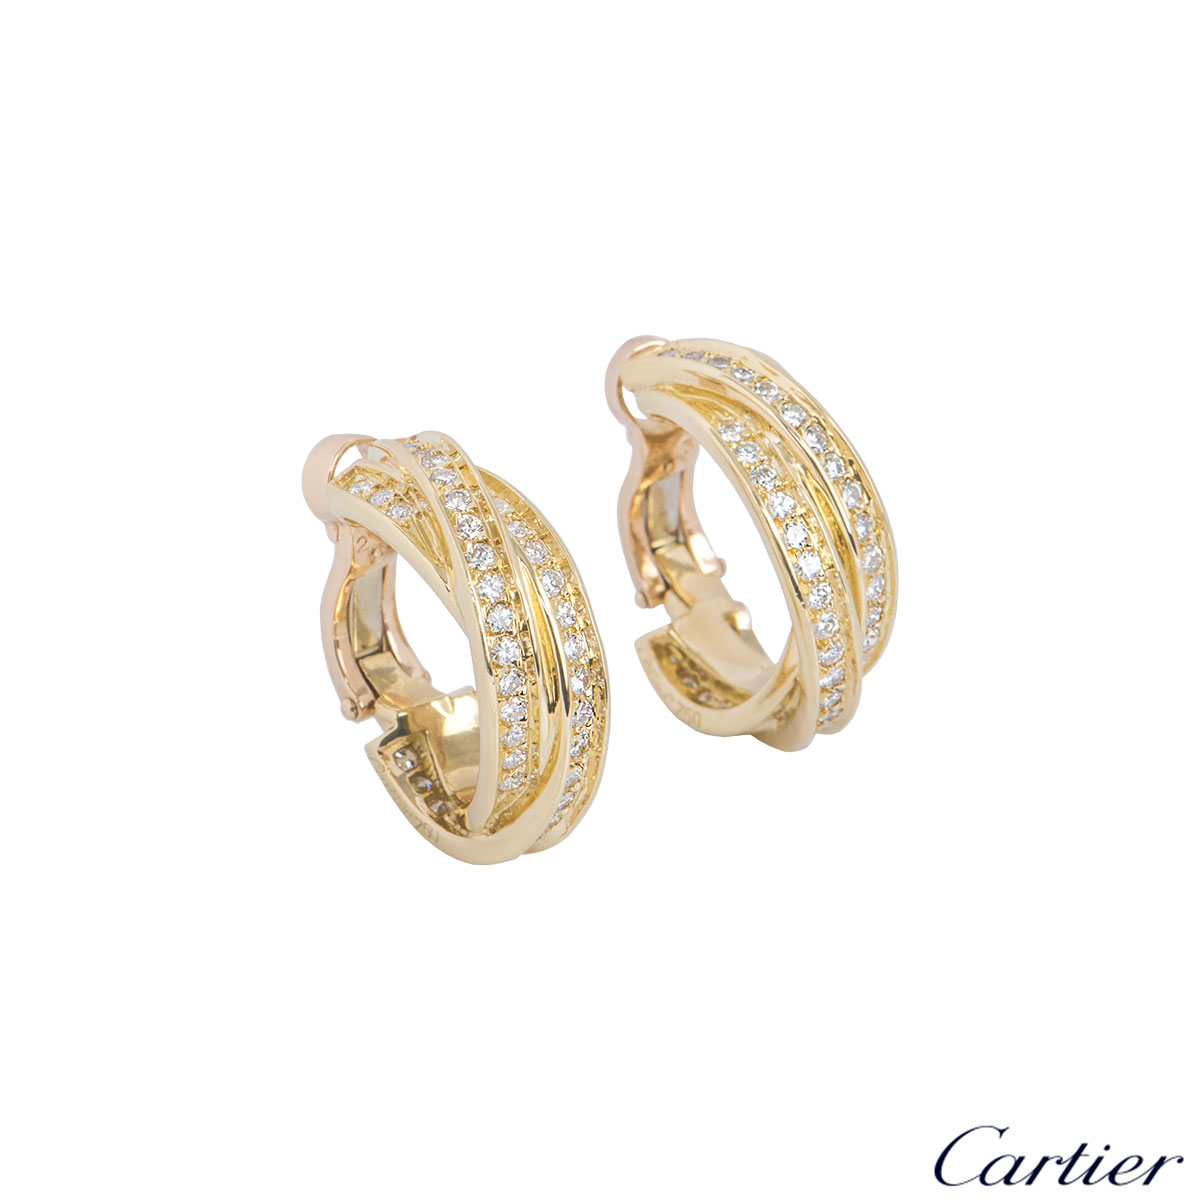 Cartier Yellow Gold Diamond Trinity De Cartier Earrings